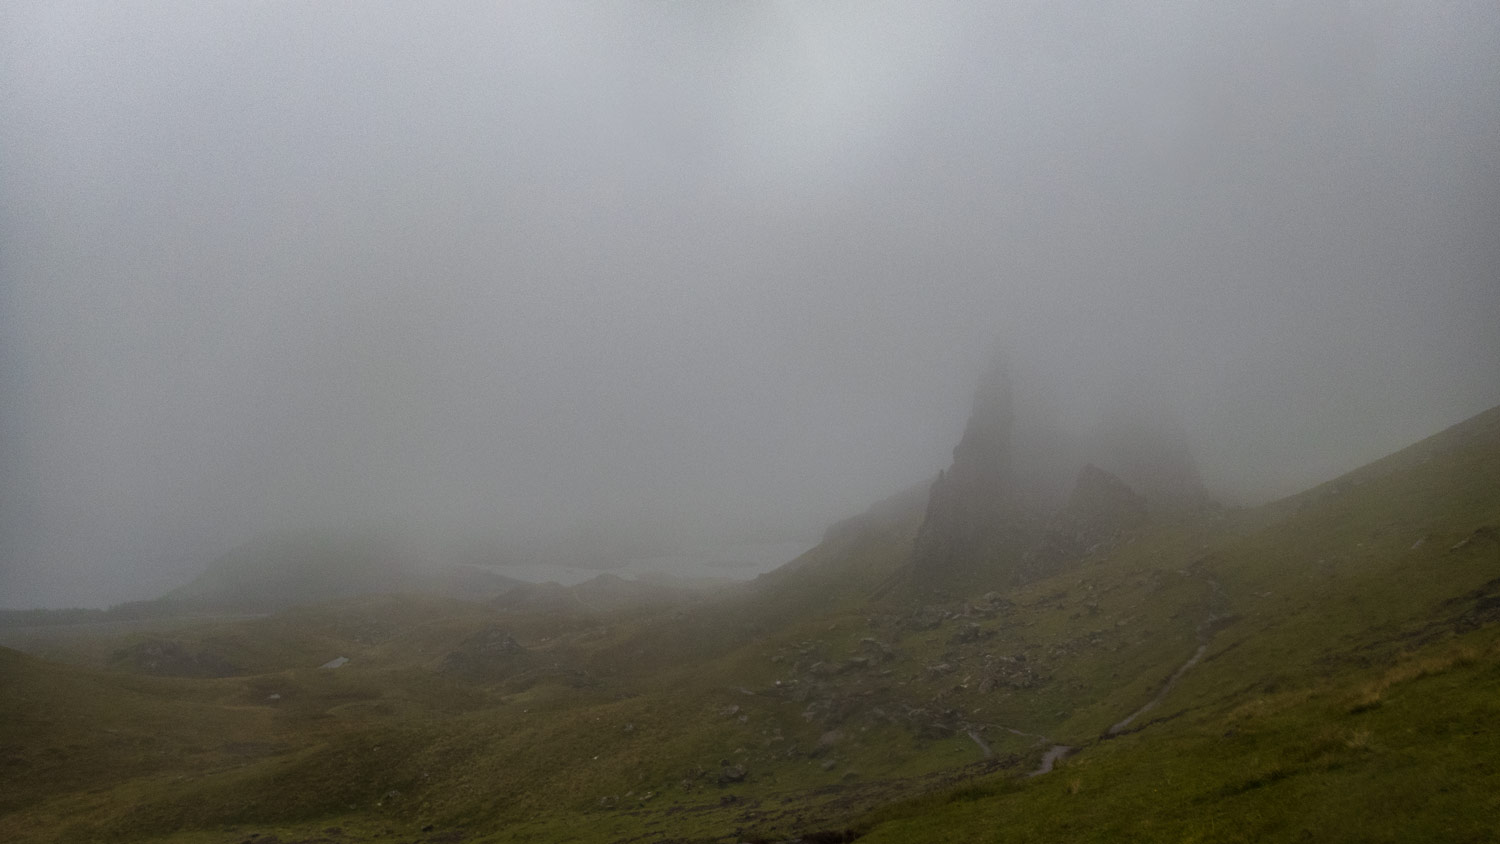 Two trips in nine months to the Old Man of Storr and this is the best view I've seen.